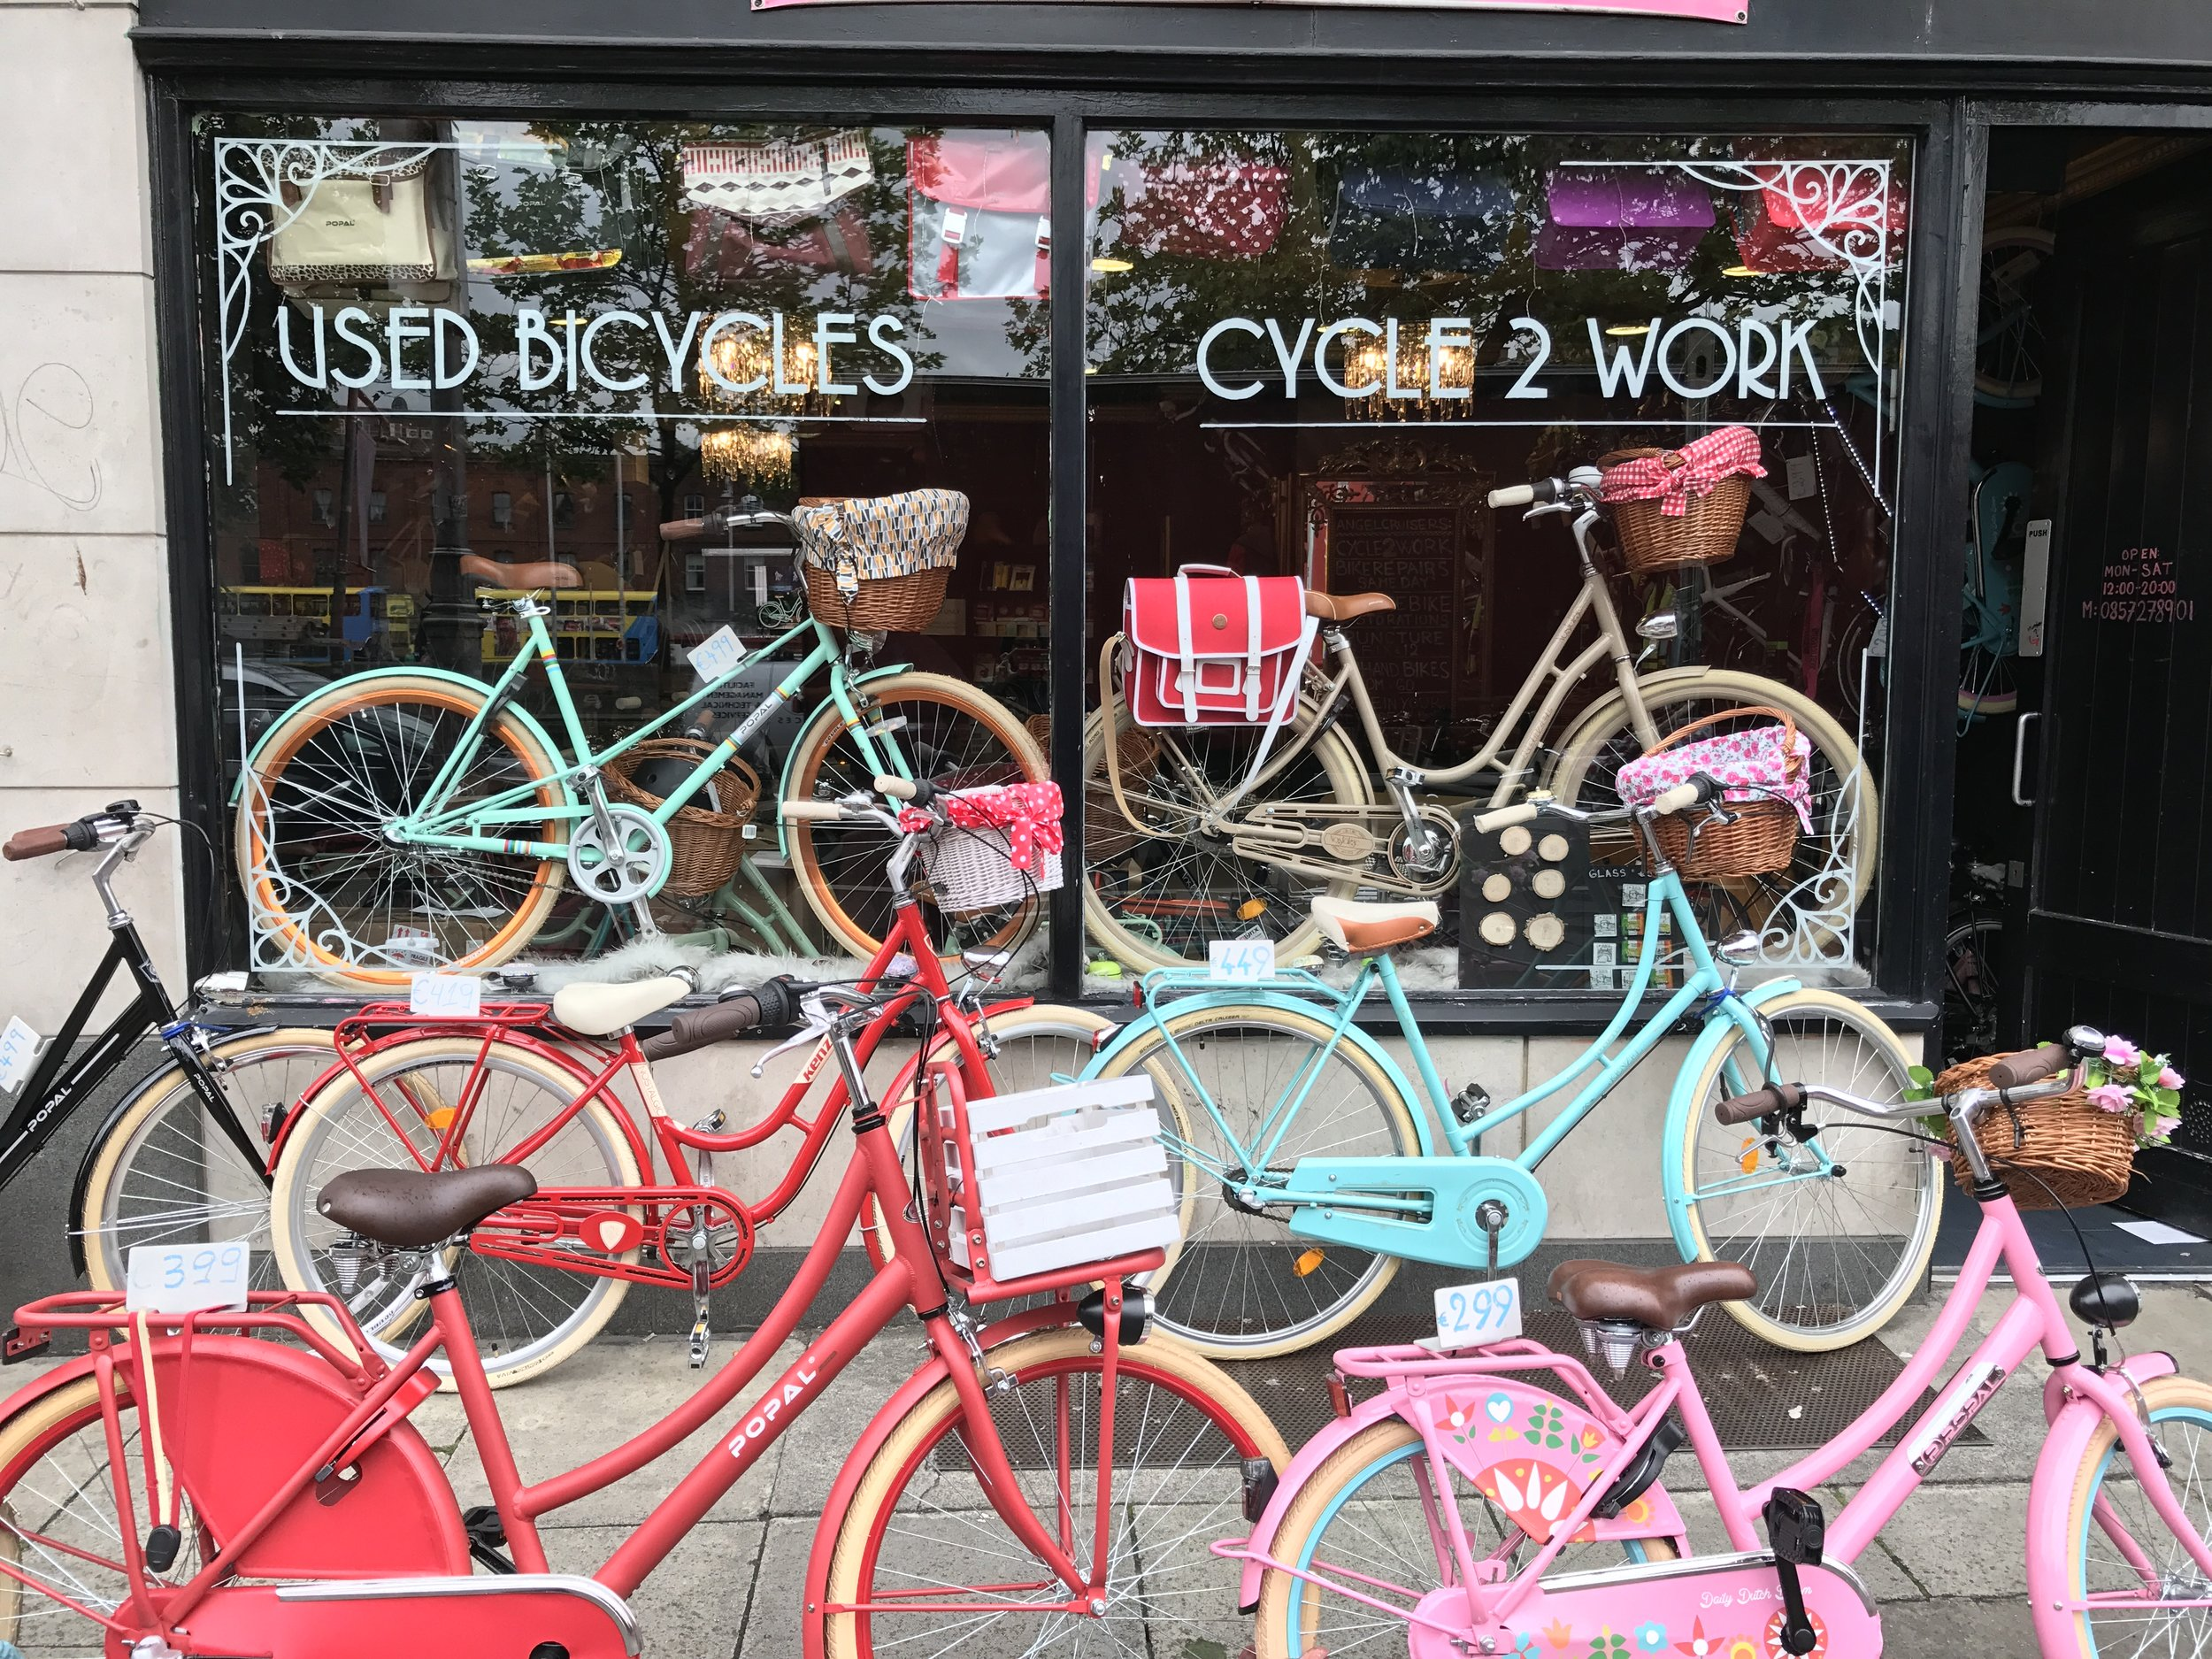 Dublin, Ireland in Video: Bikes and no plastic bags! -